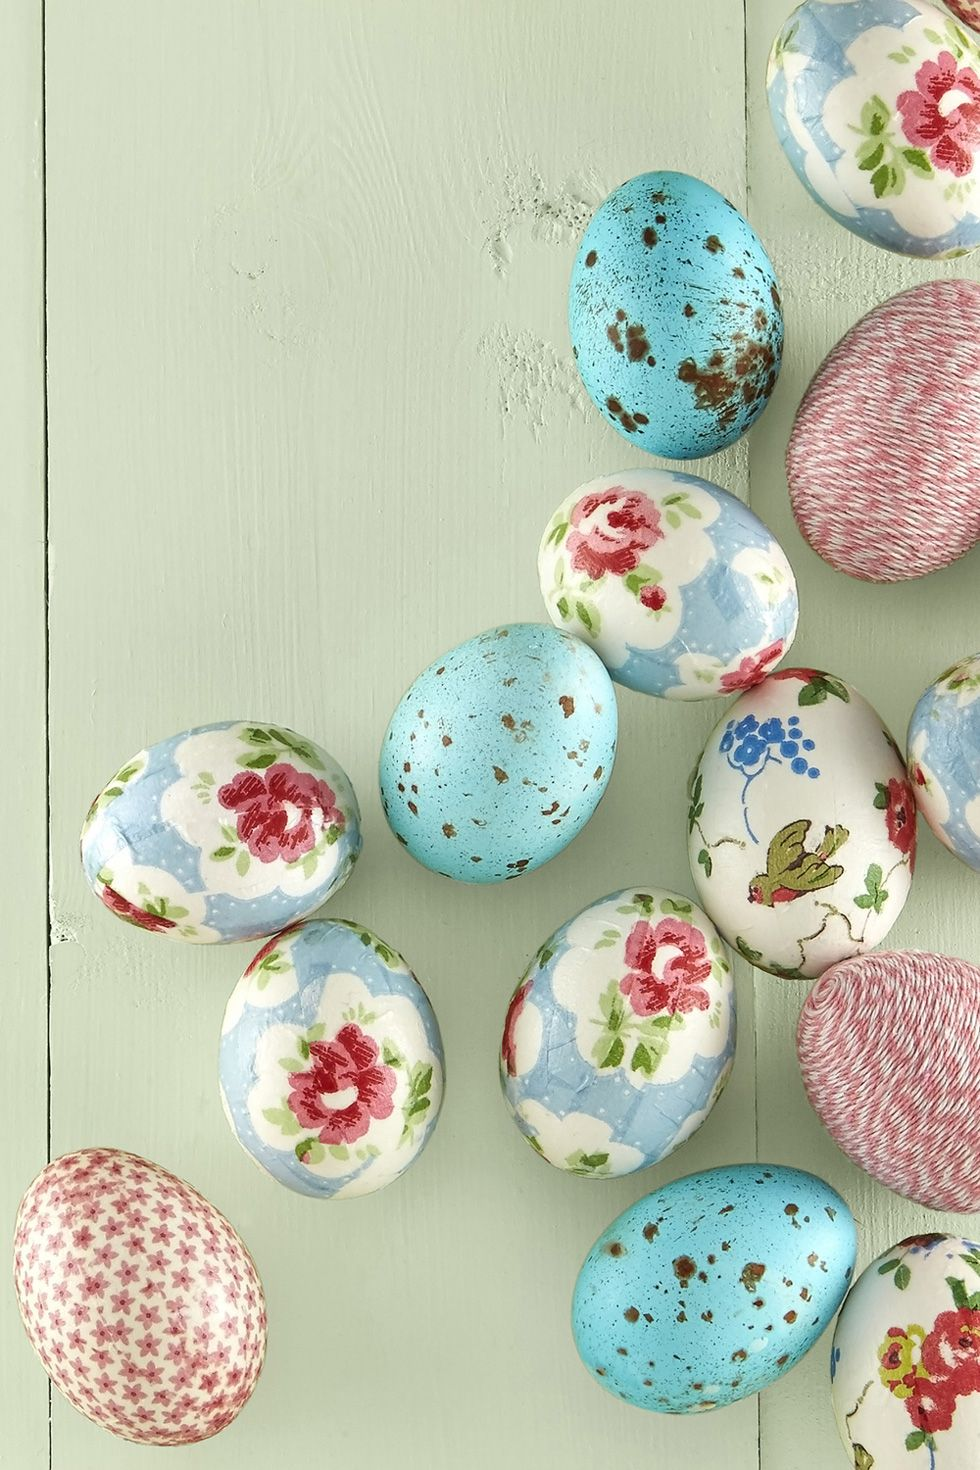 43 easy easter crafts ideas for easter diy decorations gifts 43 easy easter crafts ideas for easter diy decorations gifts country living pronofoot35fo Images